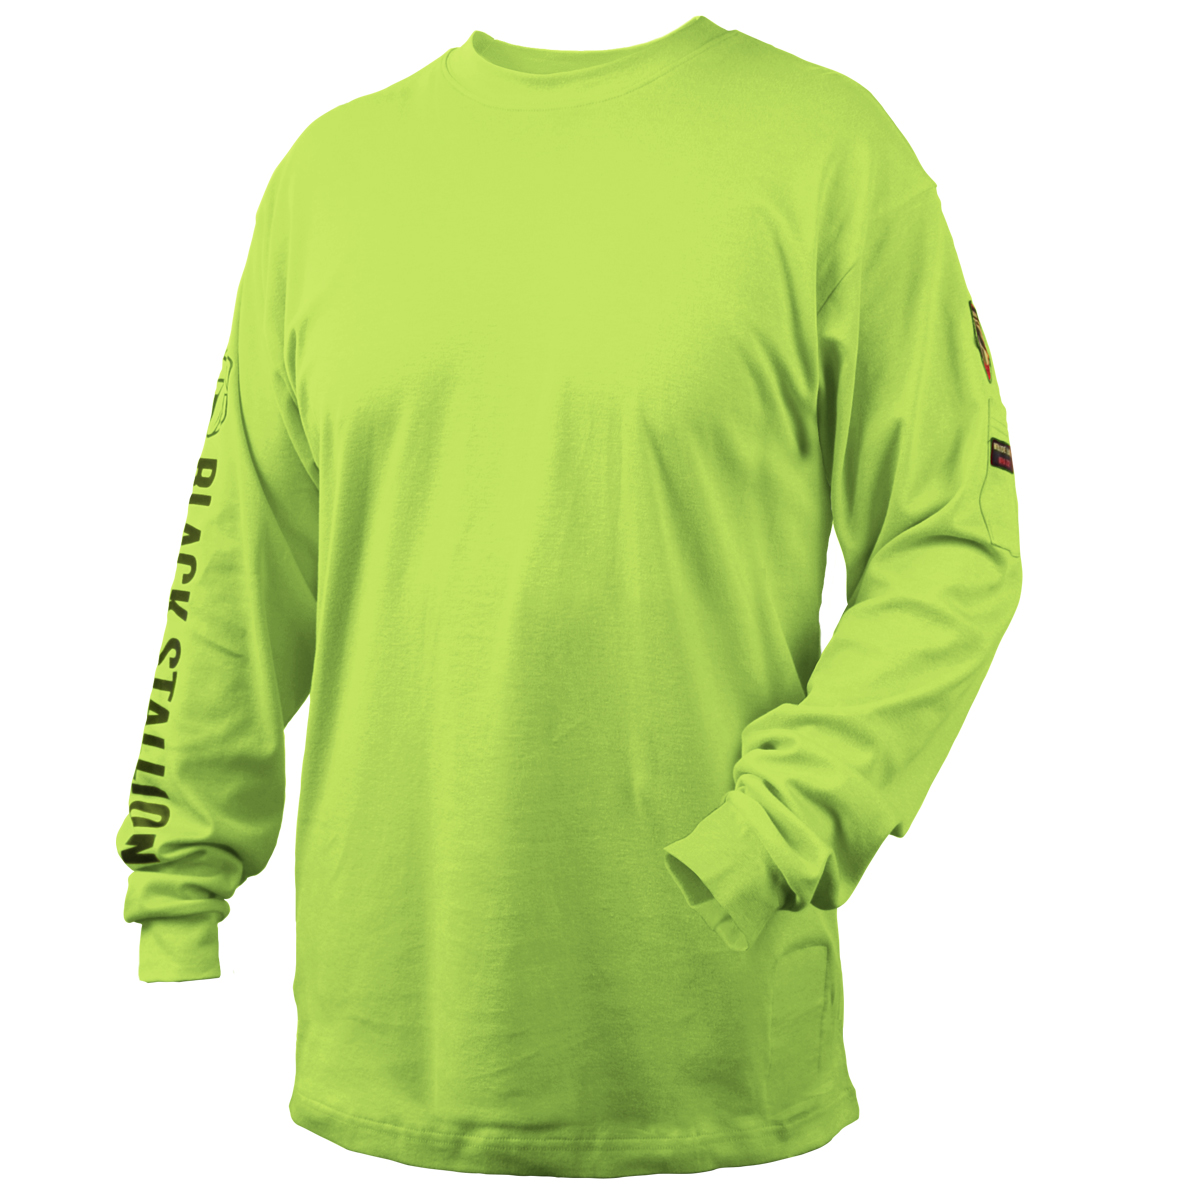 b5442e67c049 PRODUCTS   NFPA 2112   NFPA70E 7 oz. FR Cotton Knit Long-Sleeve T ...